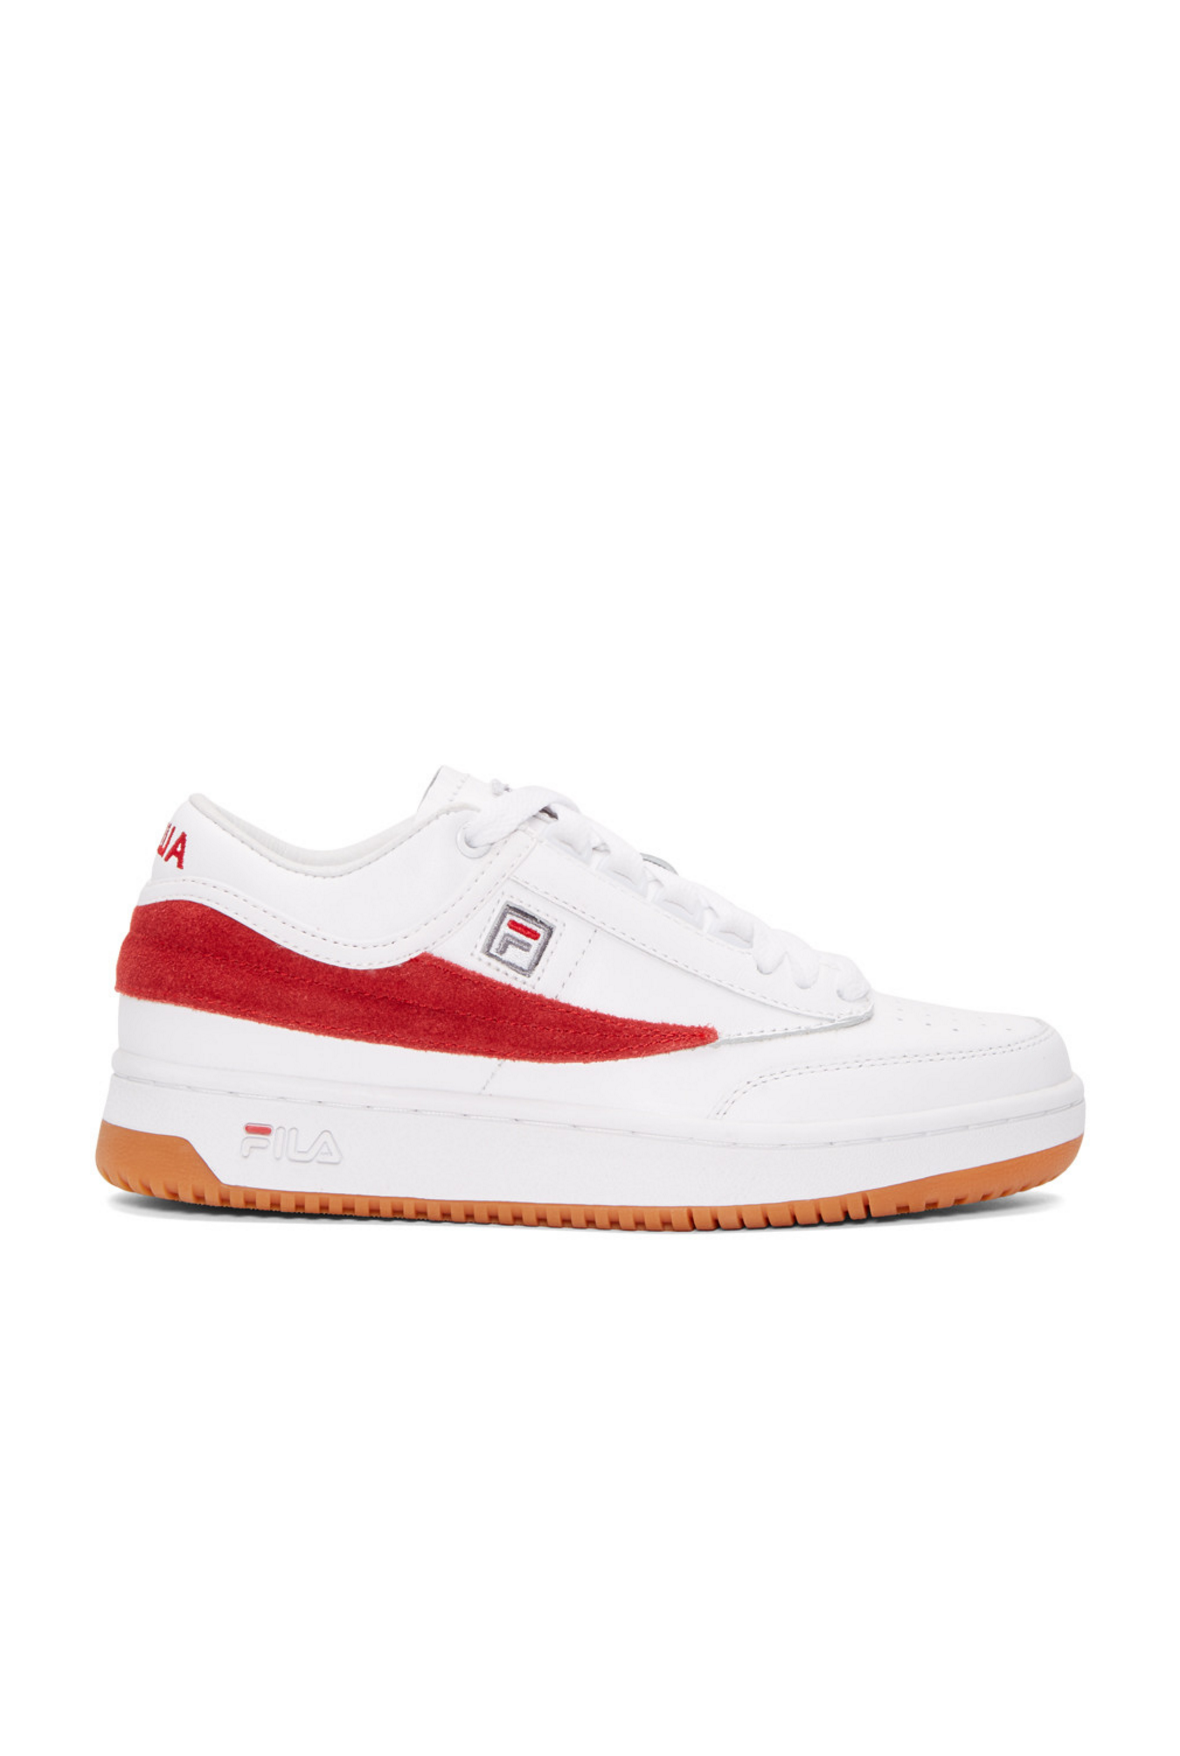 29c83ec2aaab4 Gosha Rubchinskiy White   Red Fila Edition T-1 Mid-Top Sneakers from SSENSE  (men